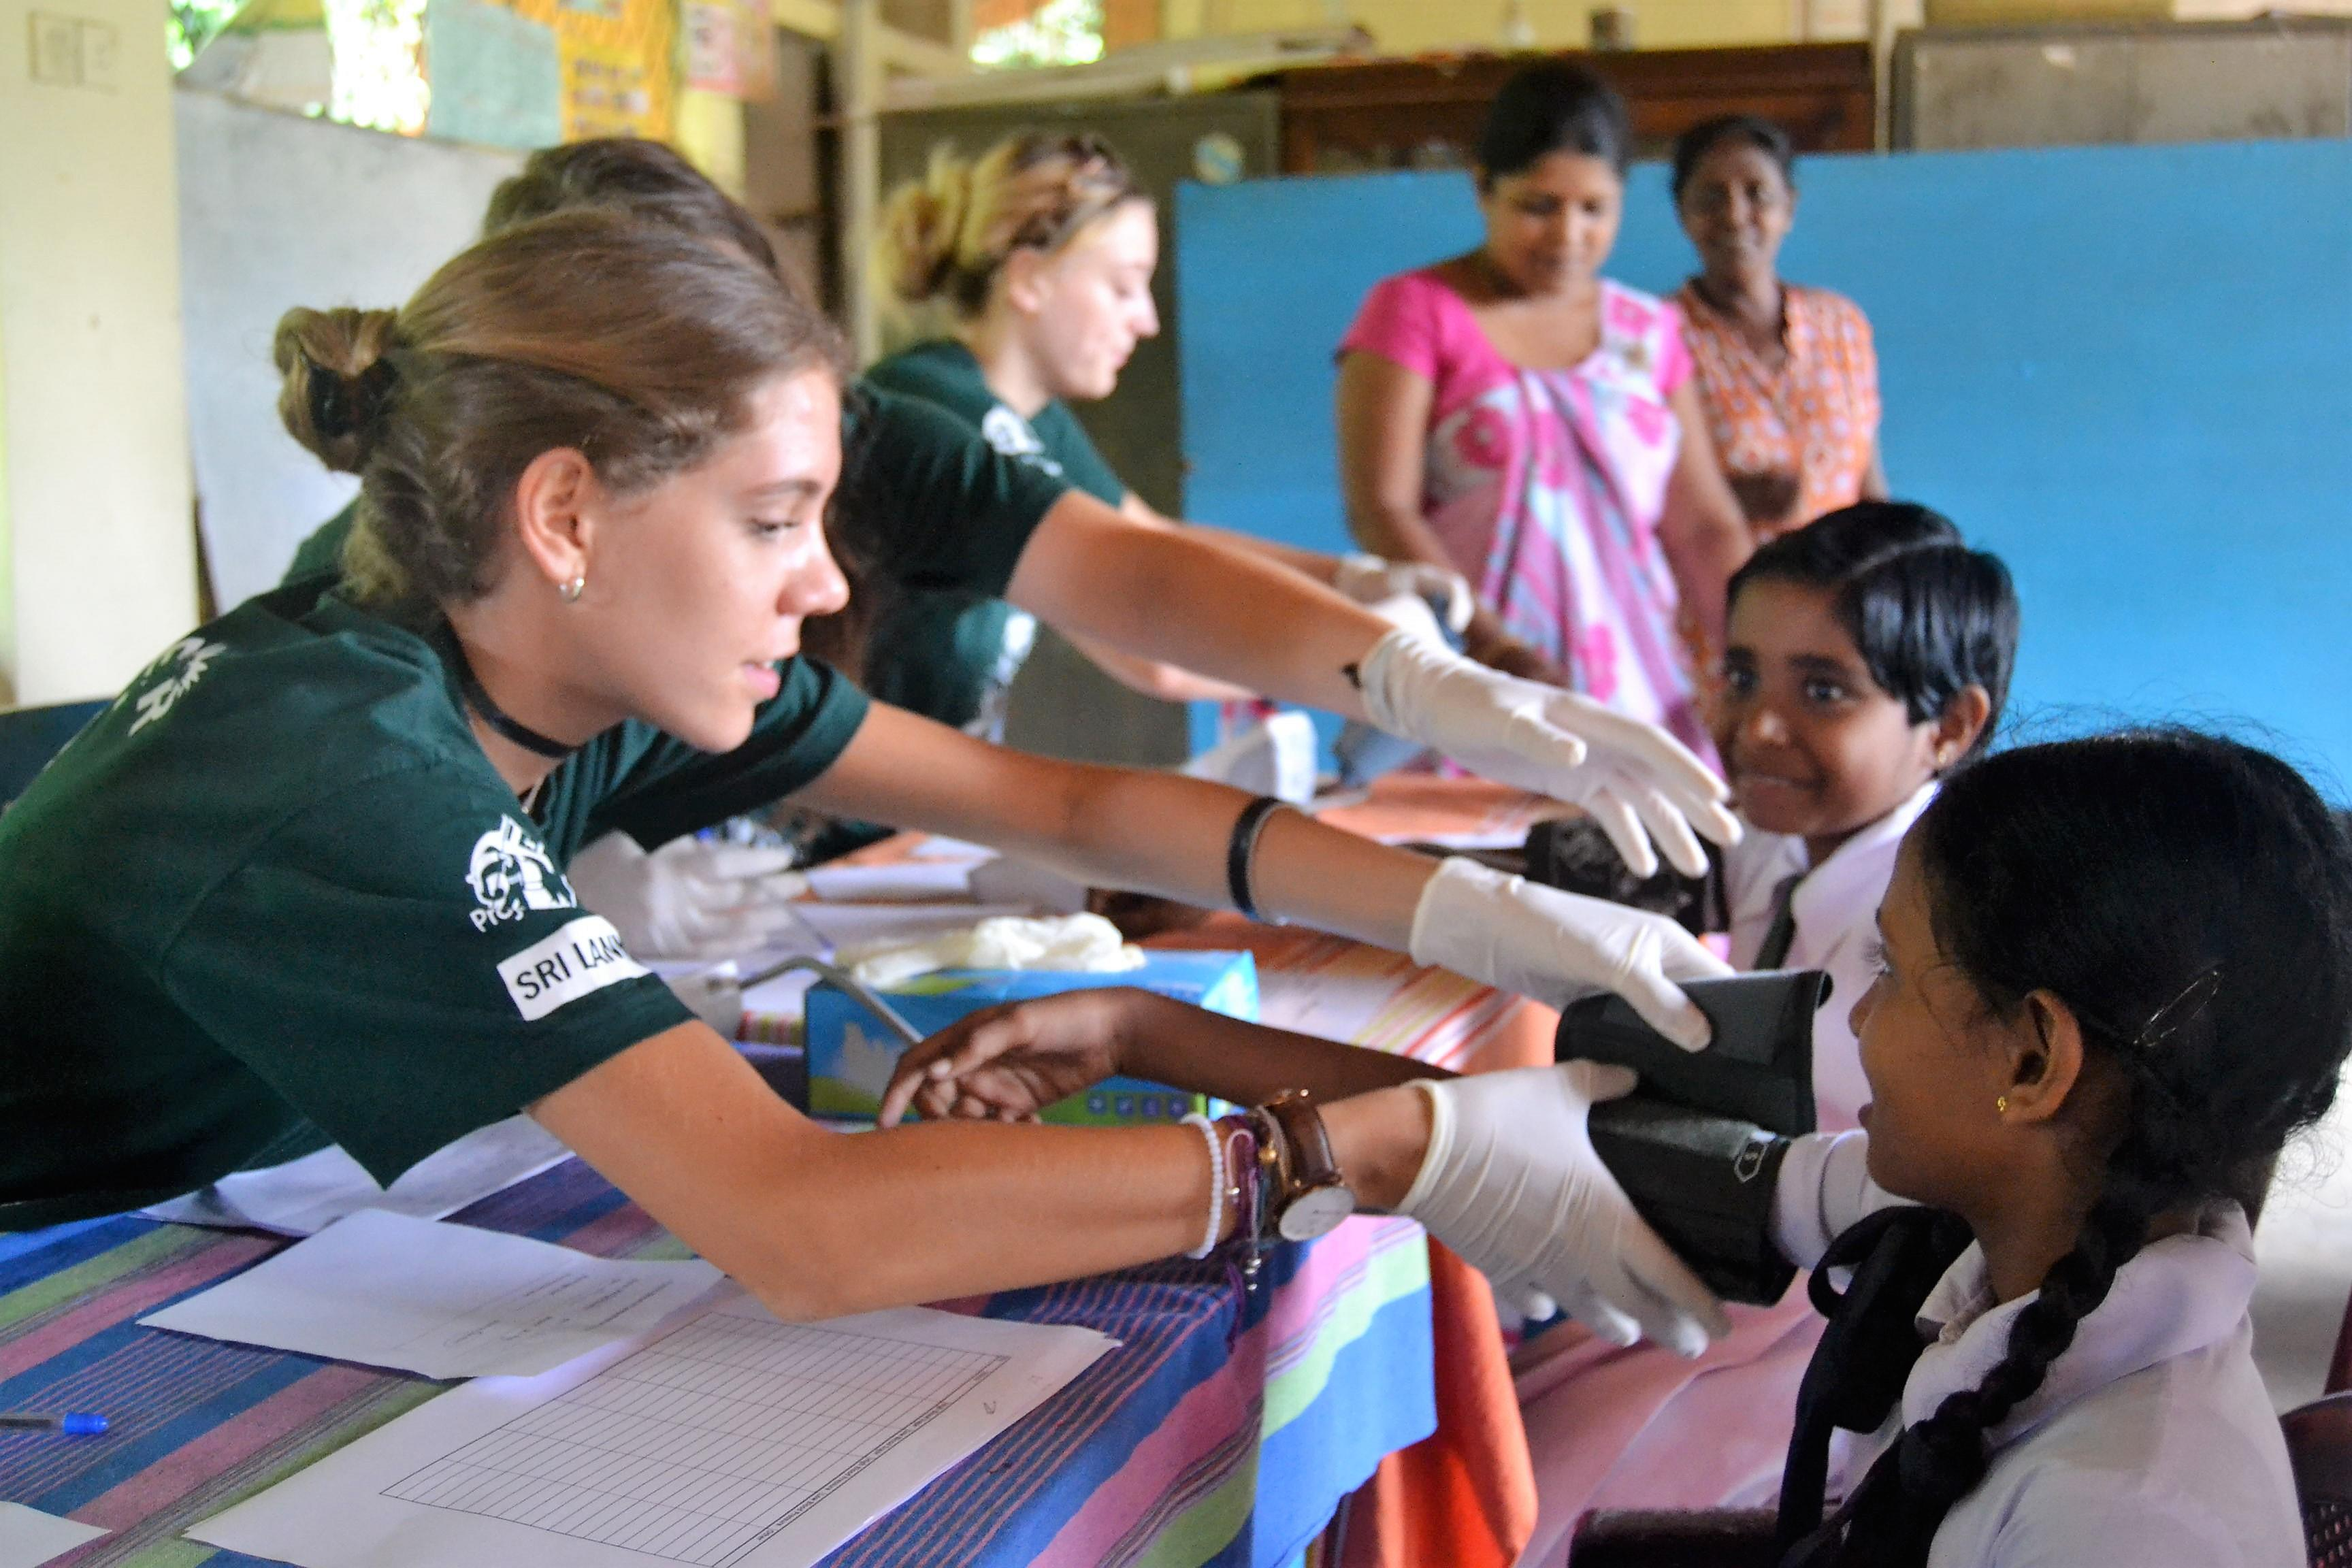 A female intern takes the blood pressure of local children during her medical internship in Sri Lanka with Projects Abroad.